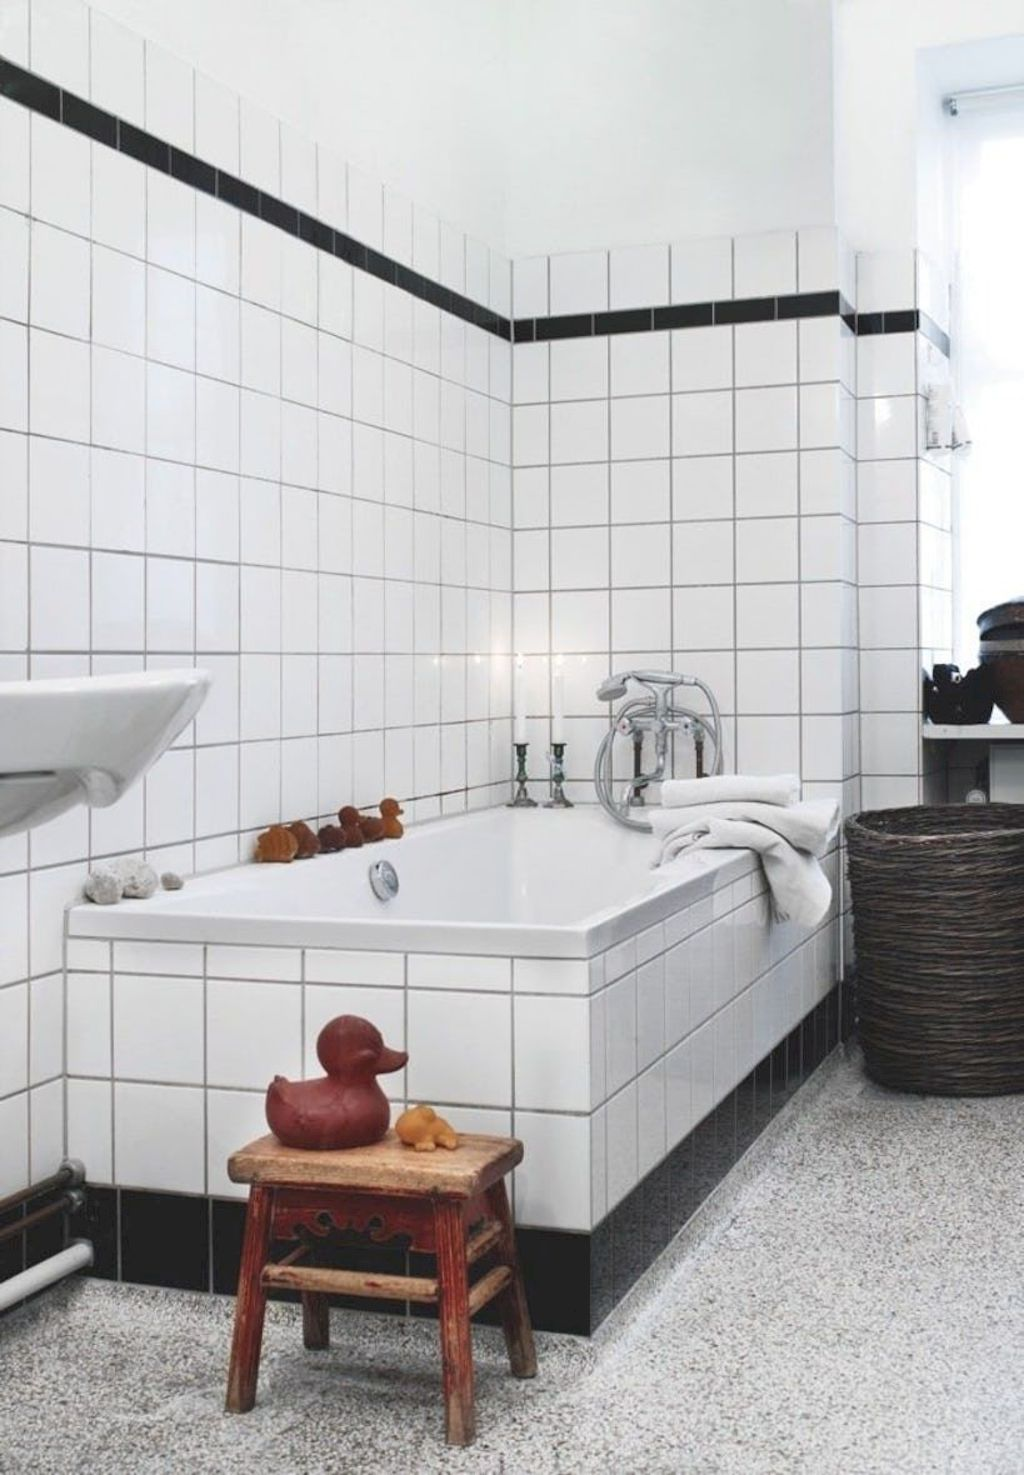 Creative bathroom updates mixing modern trend with simple 60s terrazzo style giving a brilliant contemporary balance Image 10